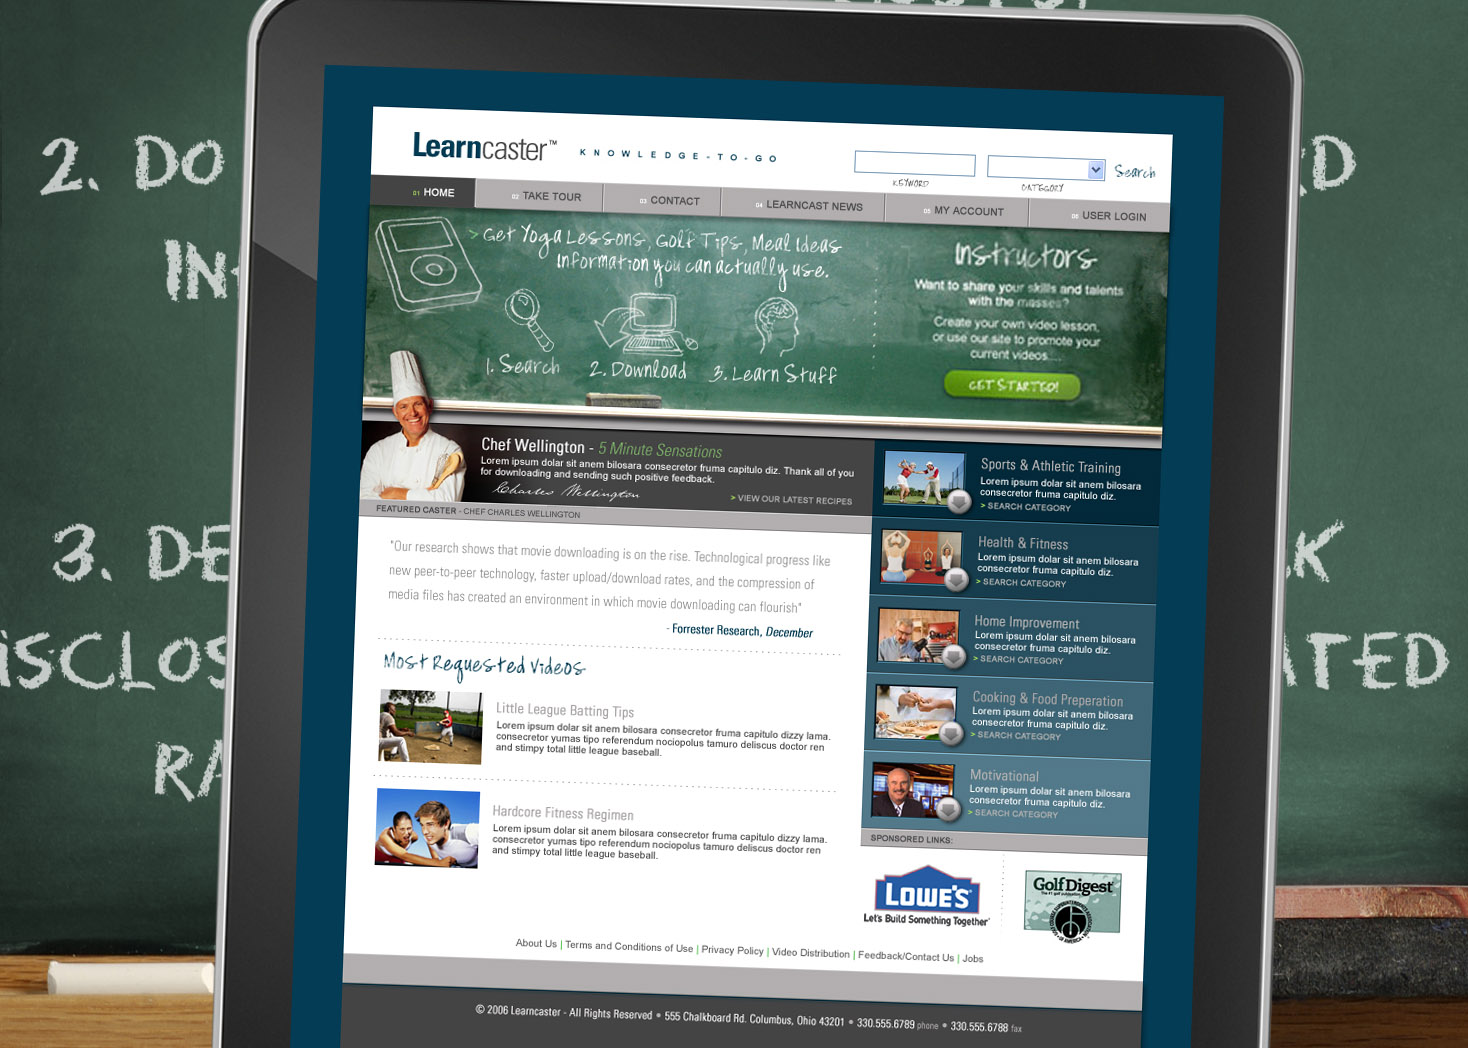 Learncaster - Website Design - Les Lehman Design